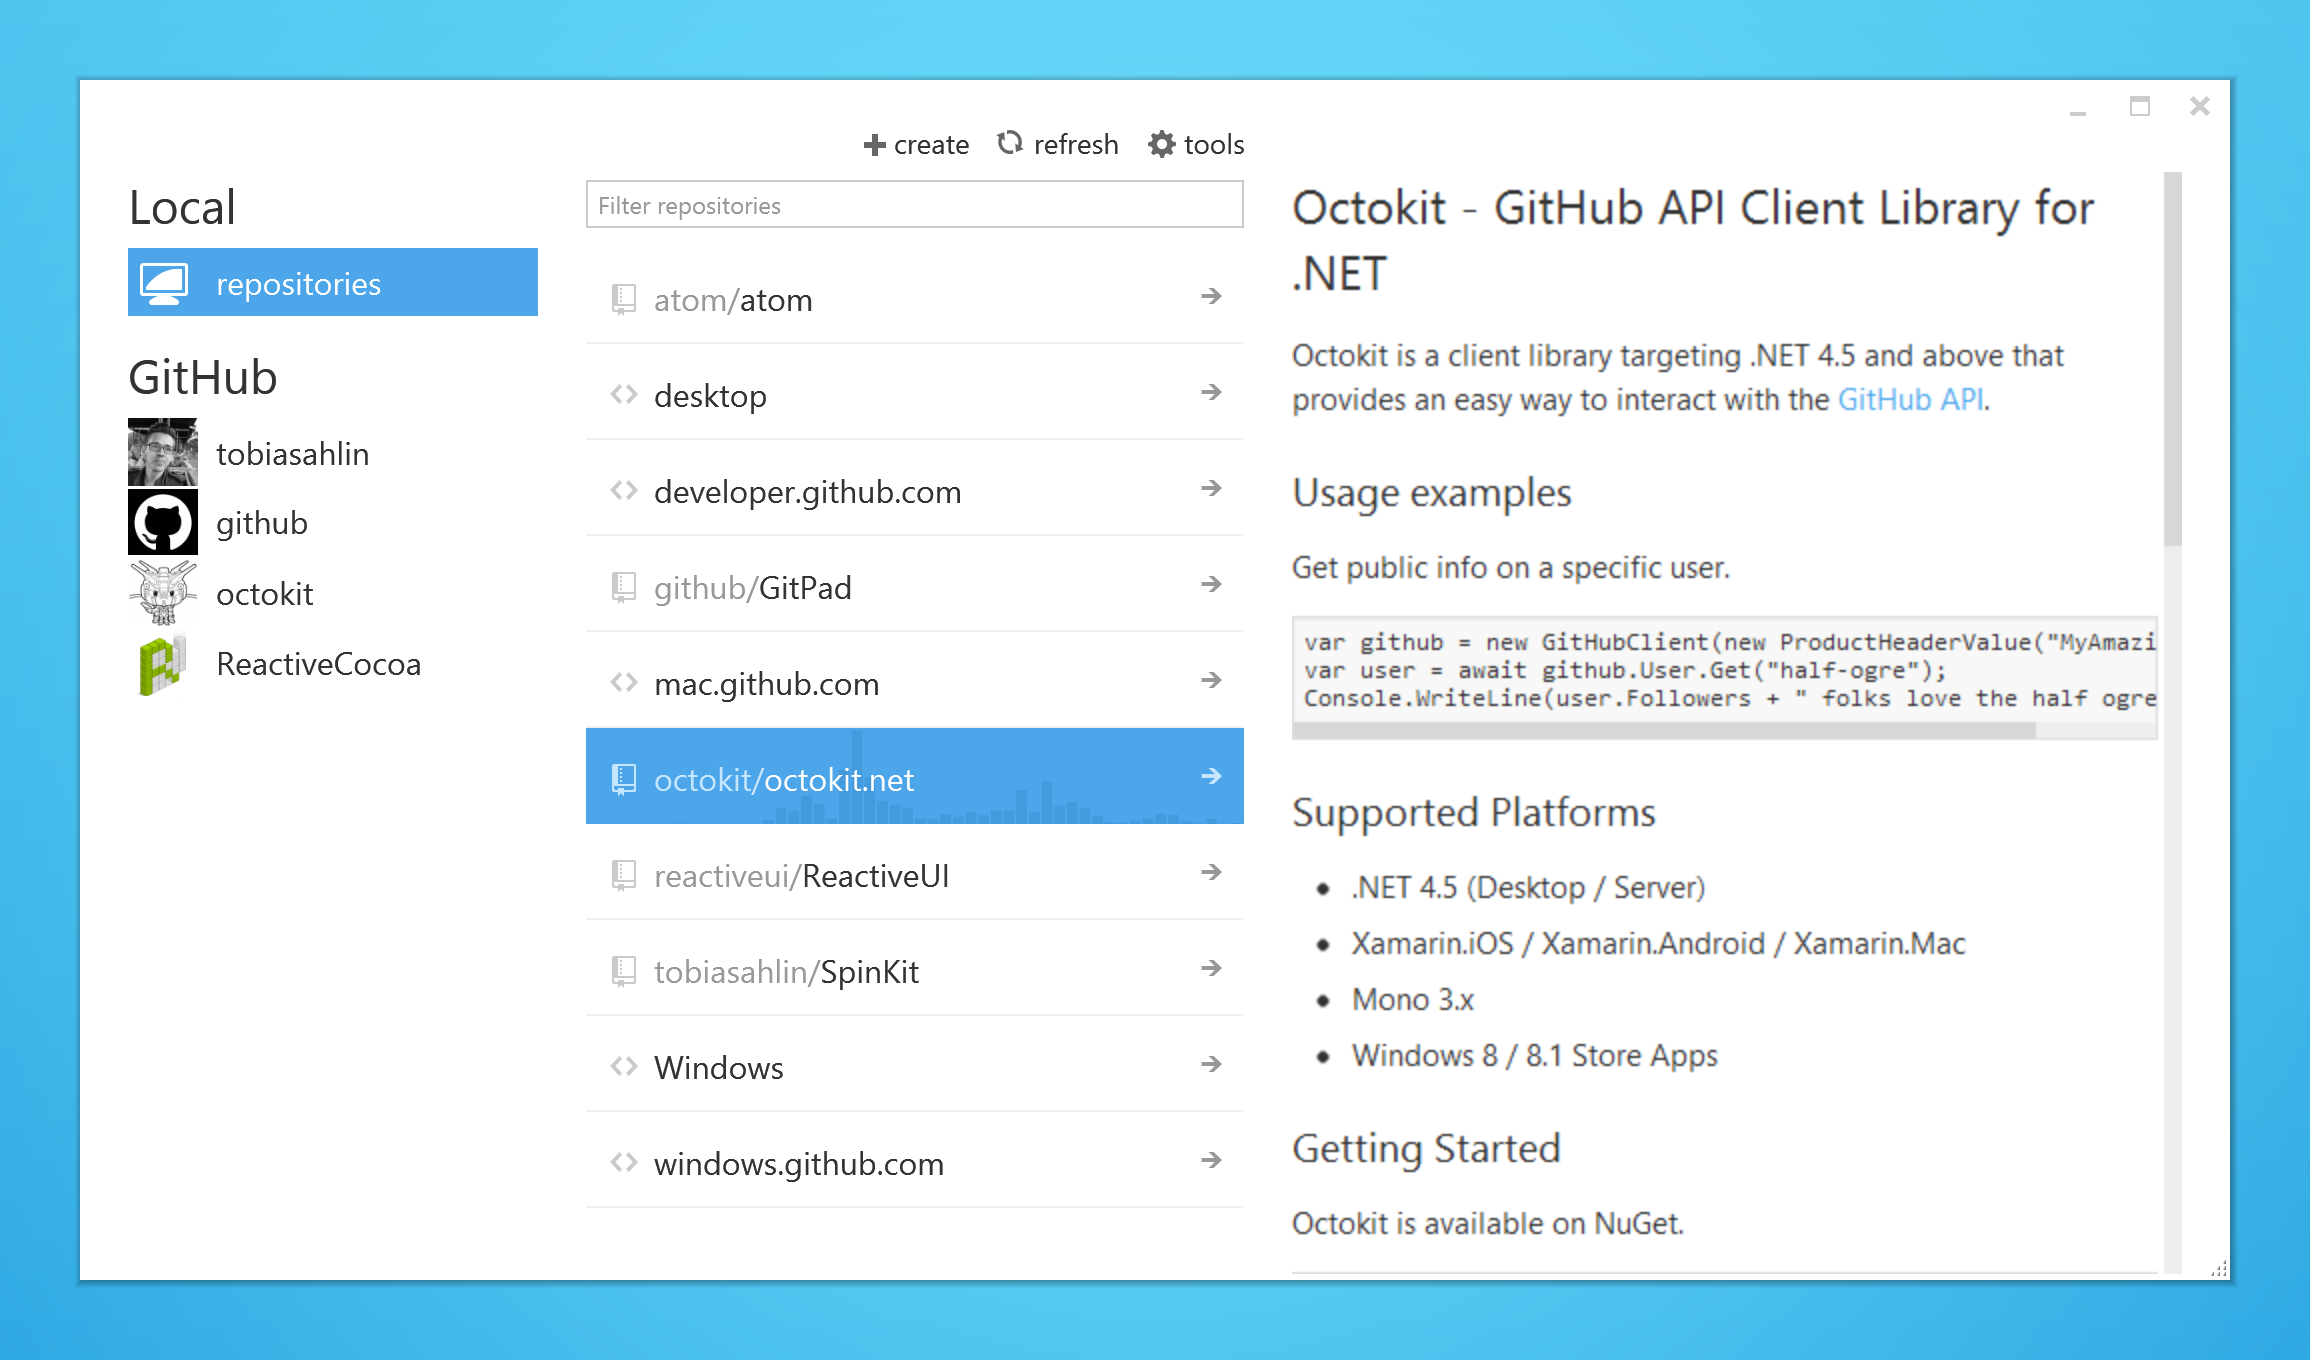 GitHub 2.0 for Windows Arrives with New Design